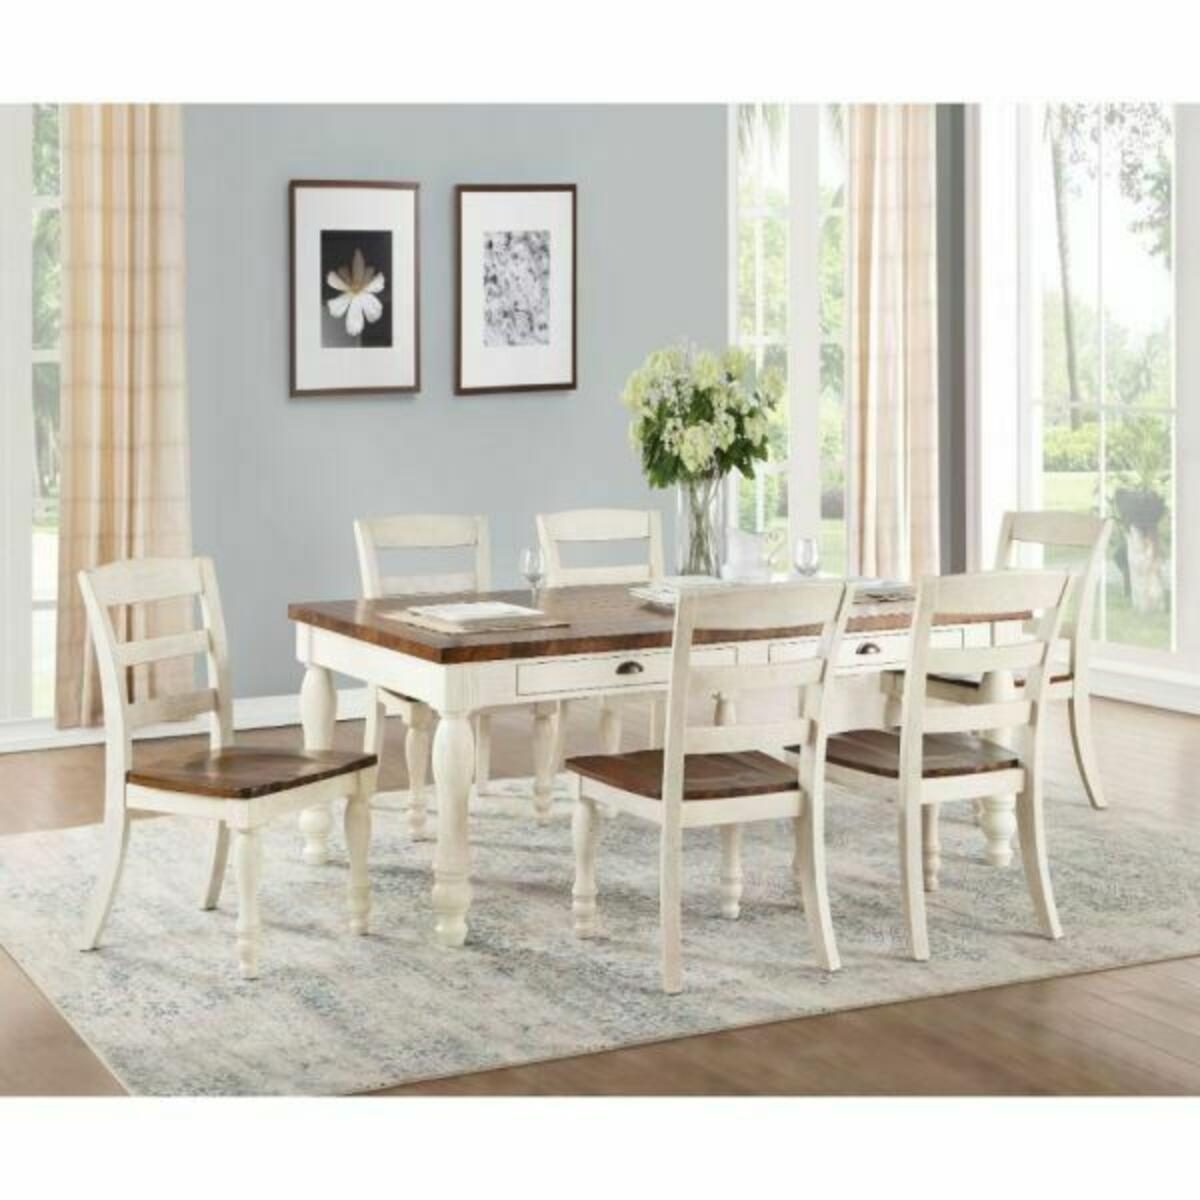 ACME Britta Dining Table - 71770 - Walnut & White Washed